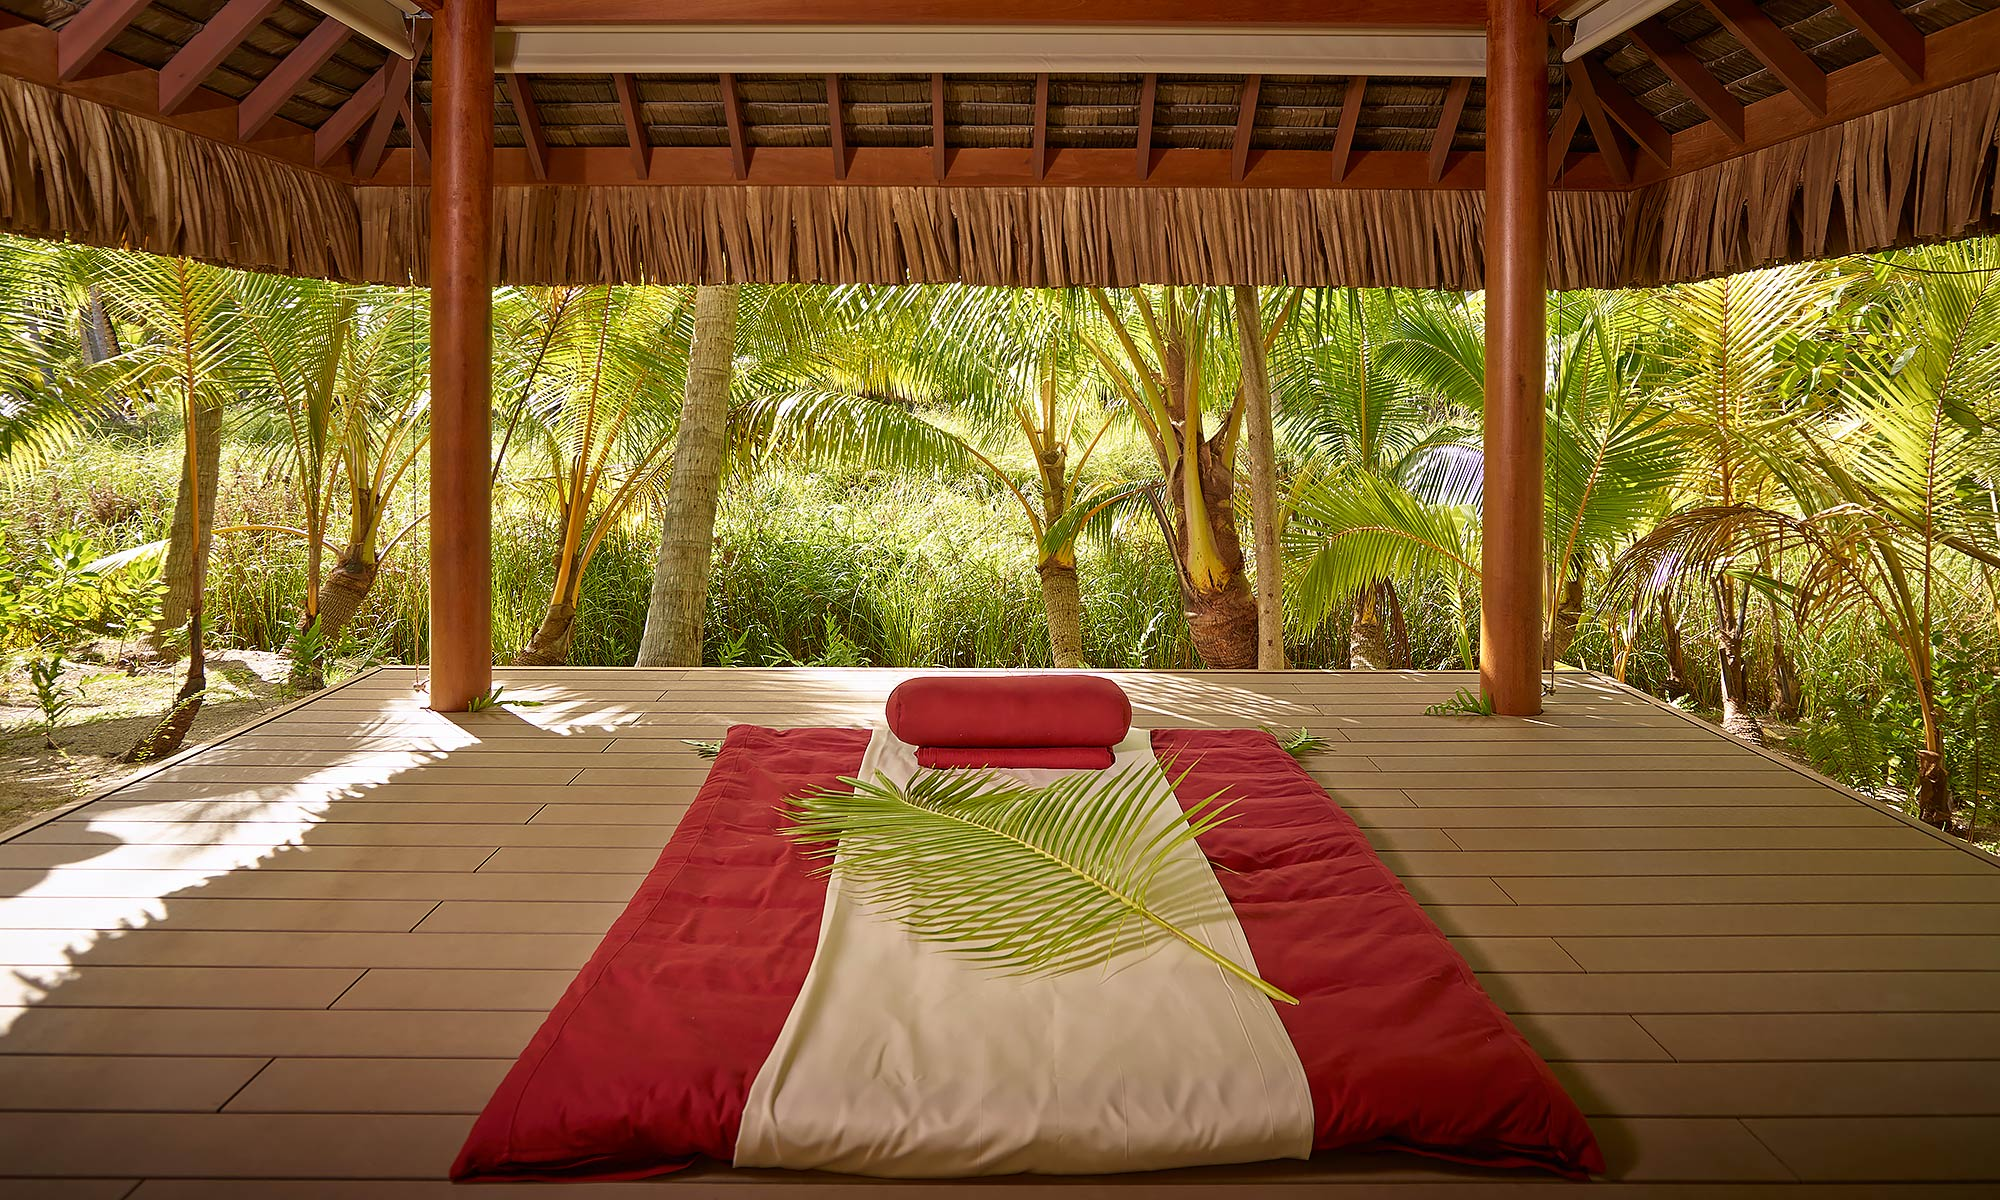 Luxury-Resort-Photography-Tahiti-Outdoor-Meditation-Spa